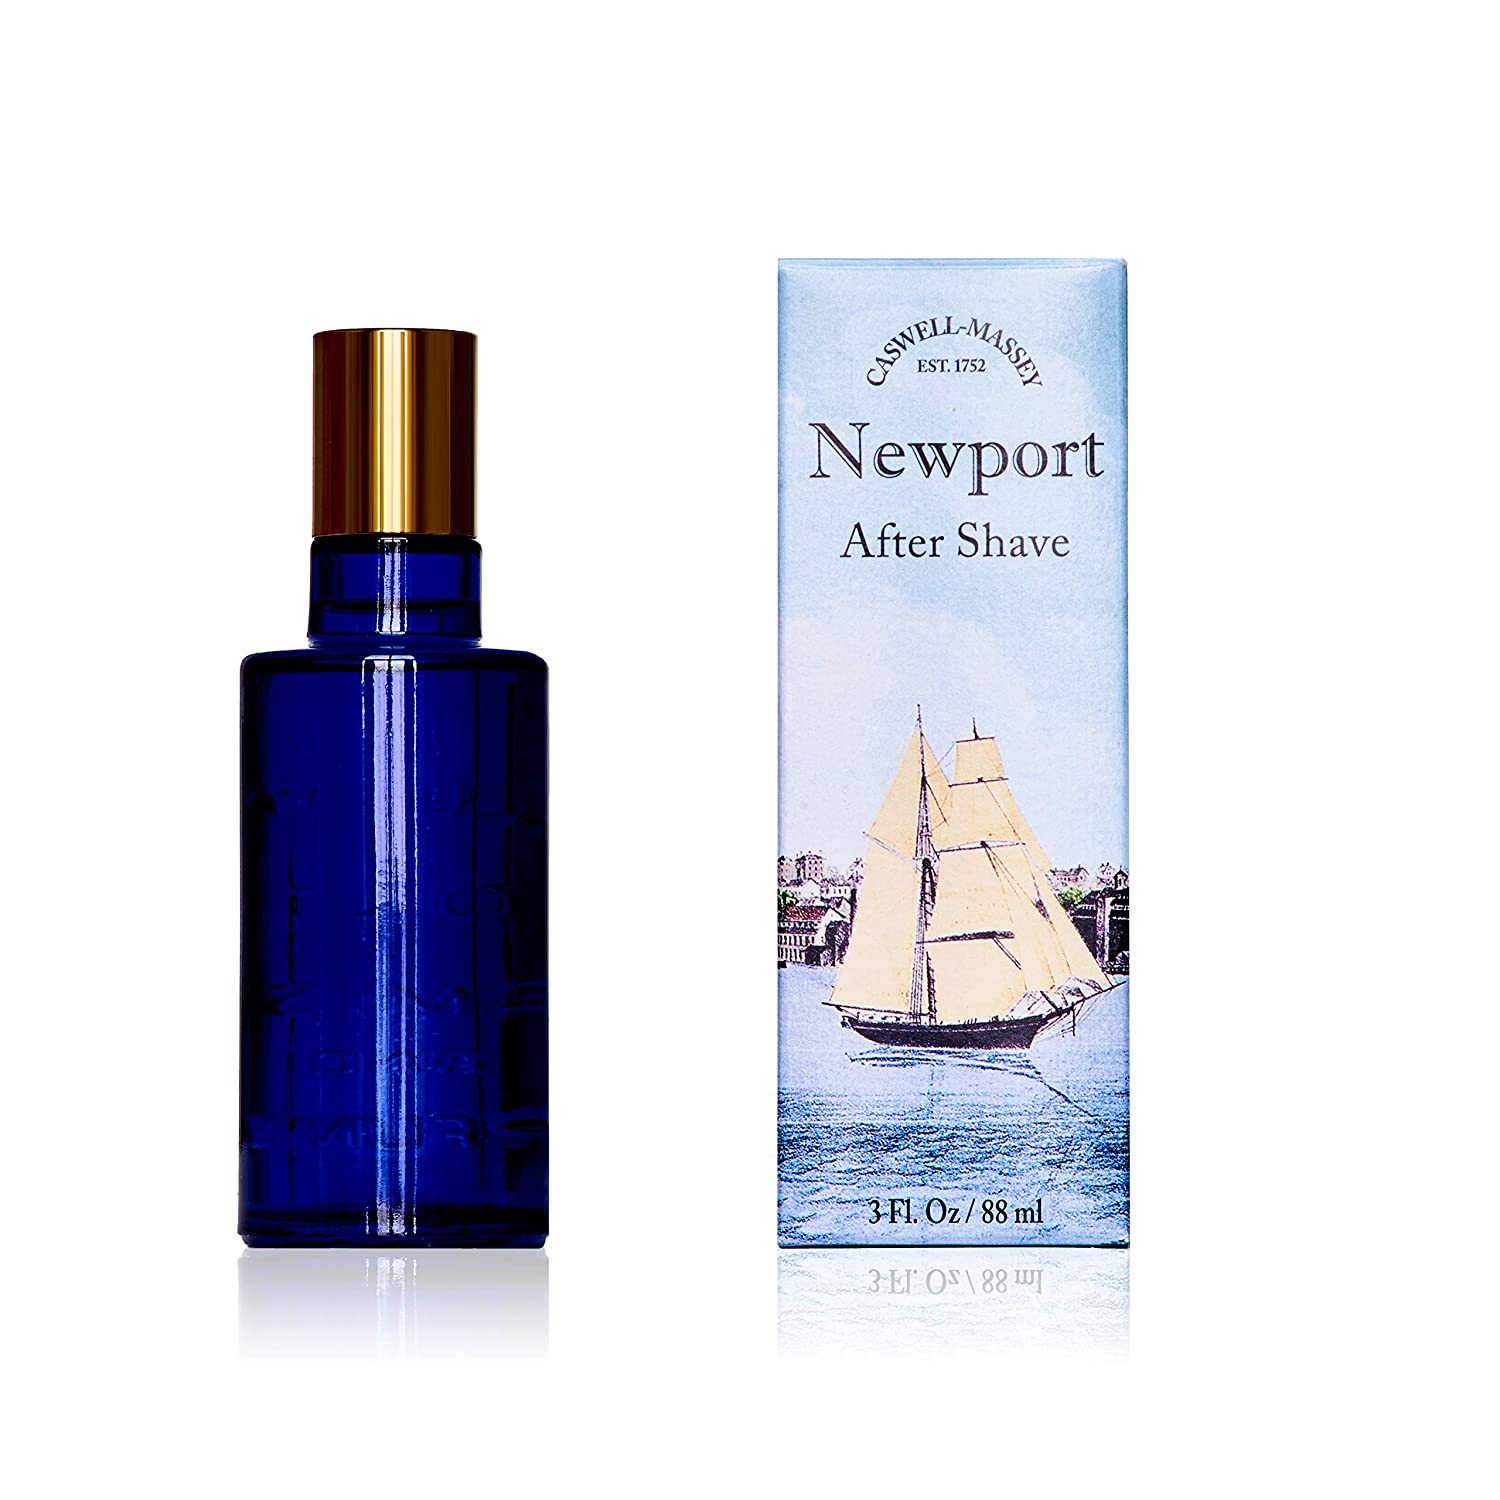 Caswell-Massey Newport After Shave – Soothing Aftershave Infused With Scents of Sandalwood, Citrus, and Cedar Made In USA